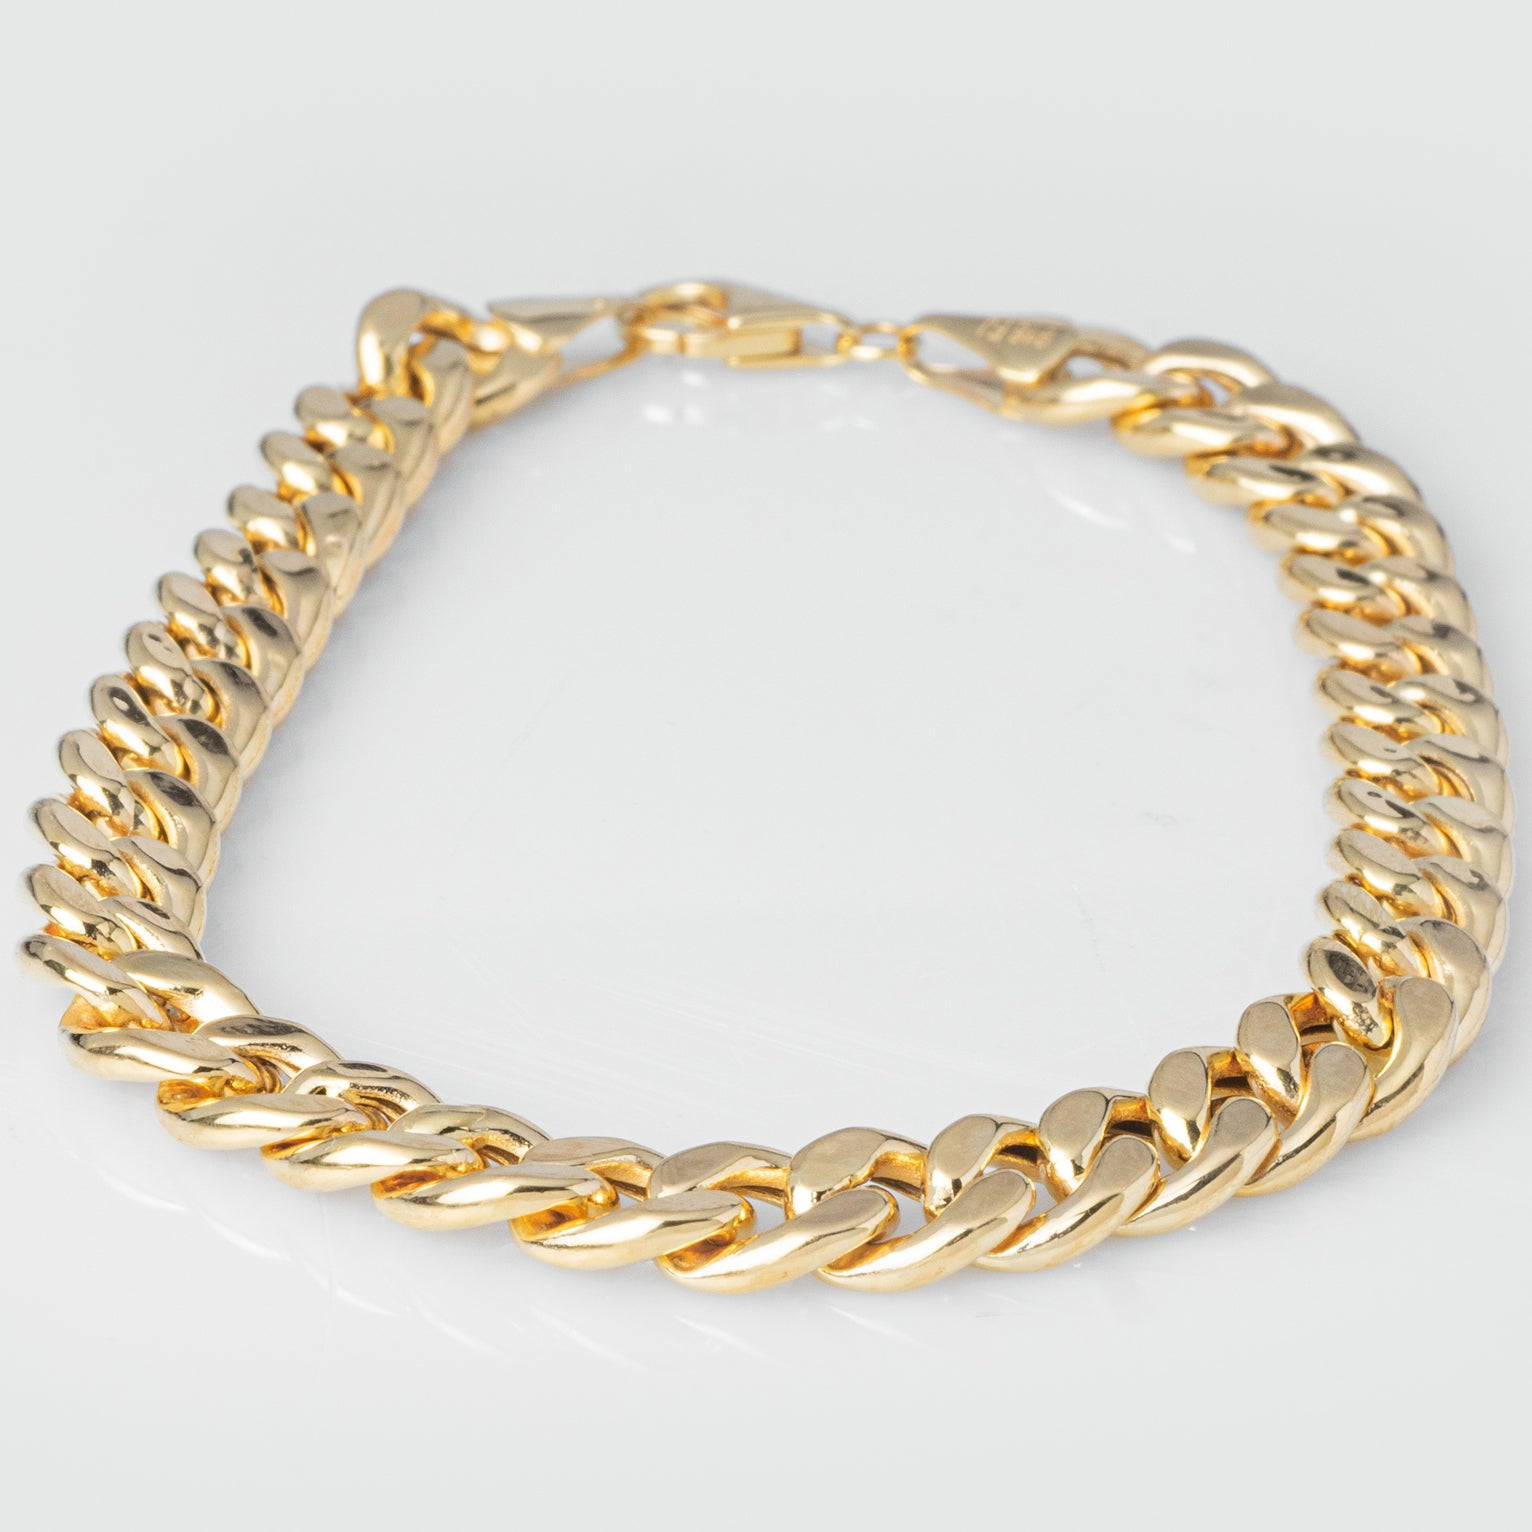 22ct Gold Curb Link Gents Bracelet with Mirror Finish fitted with a Lobster Clasp (15.6g) GBR-8044